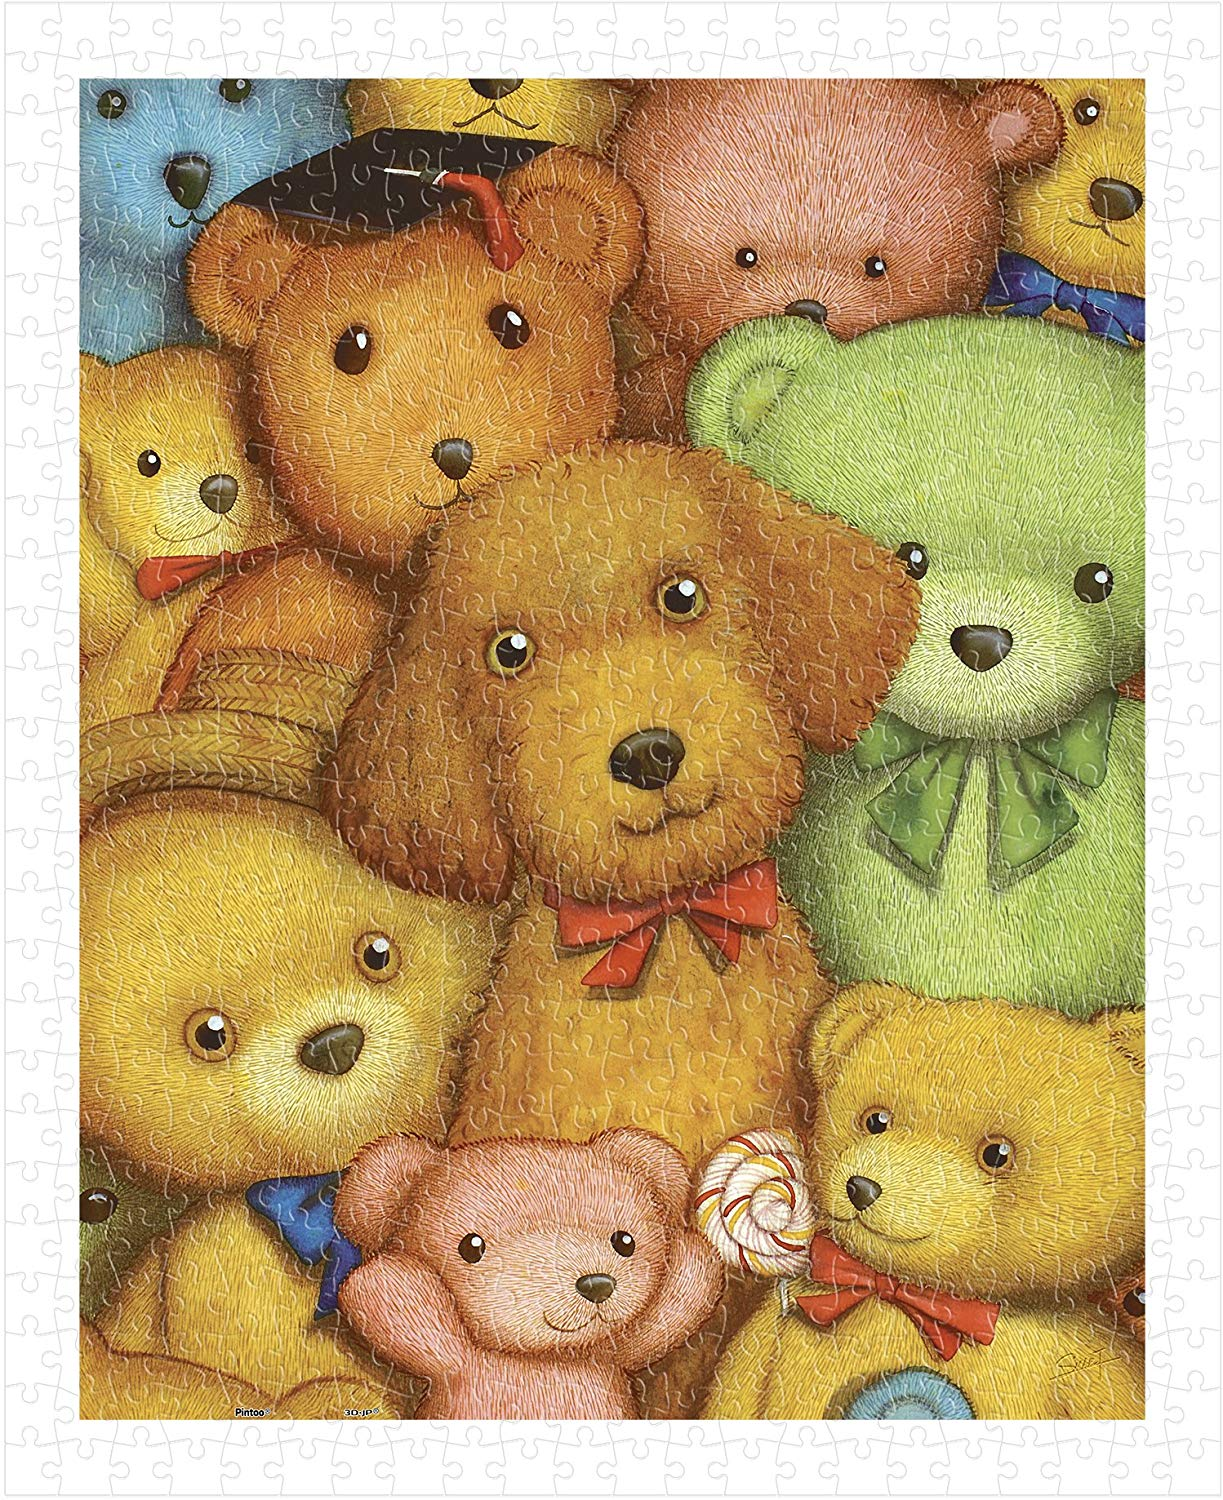 pintoo-puzzle-aus-kunststoff-smart-poodle-and-teddy-bears-500-teile-puzzle-pintoo-h1124